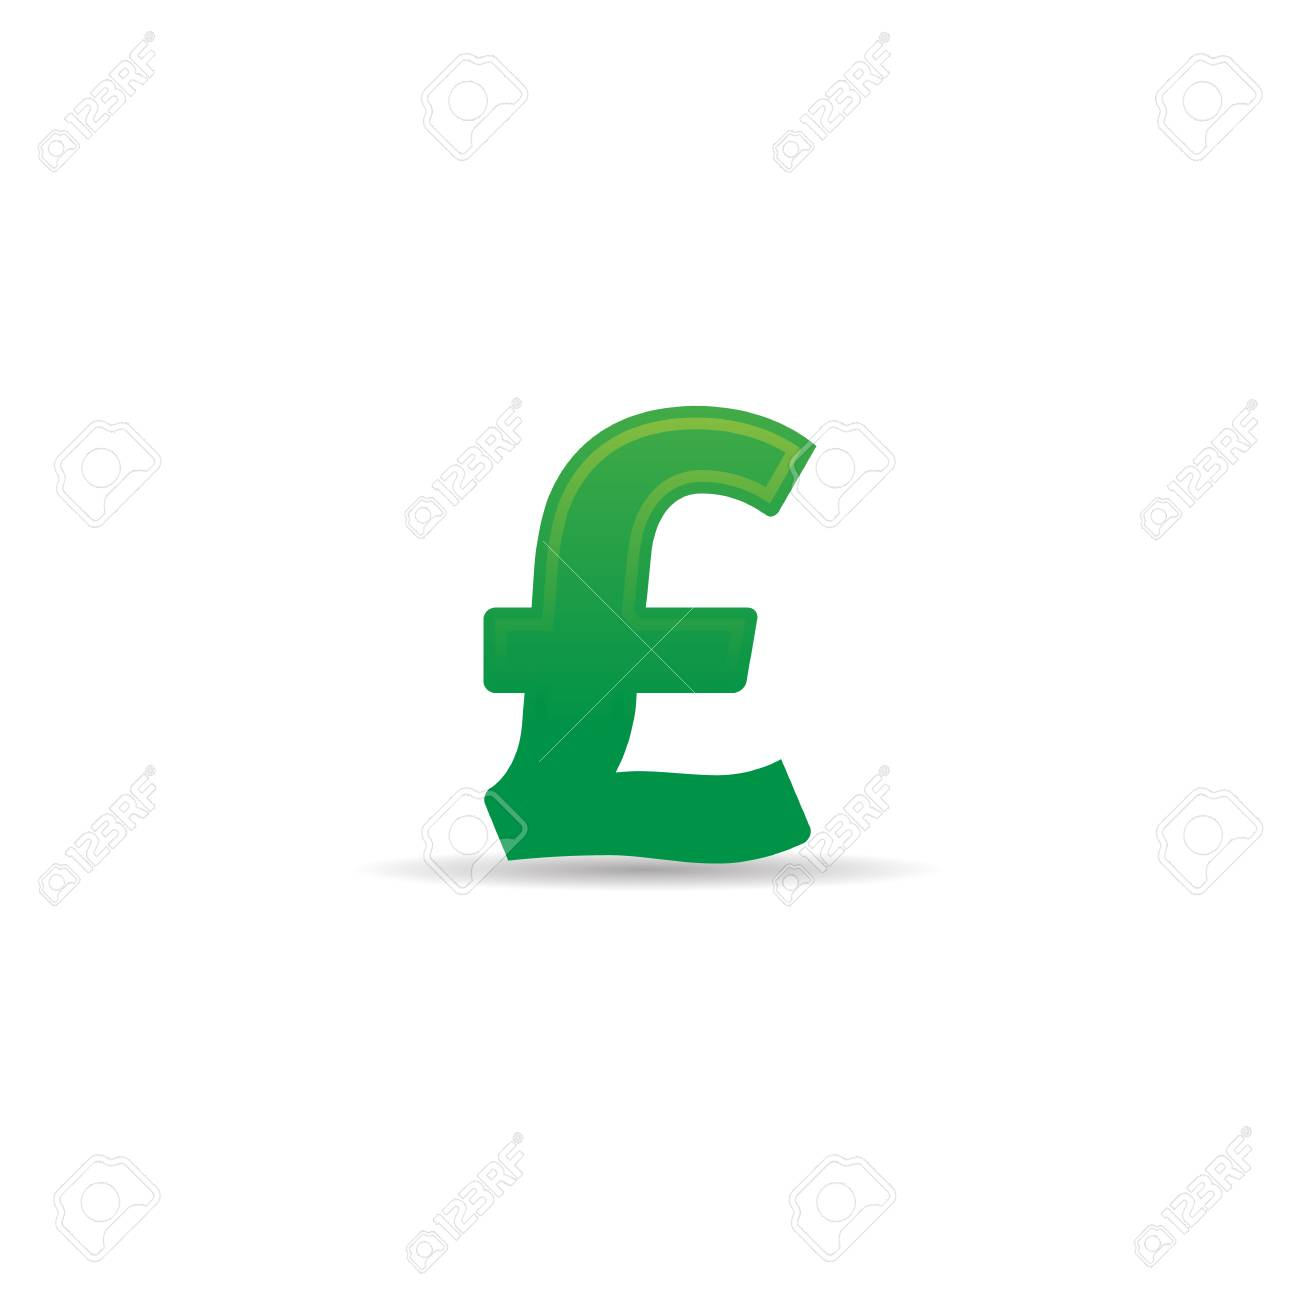 Pound sterling symbol icon in color uk currency britain royalty pound sterling symbol icon in color uk currency britain stock vector 71632534 biocorpaavc Gallery